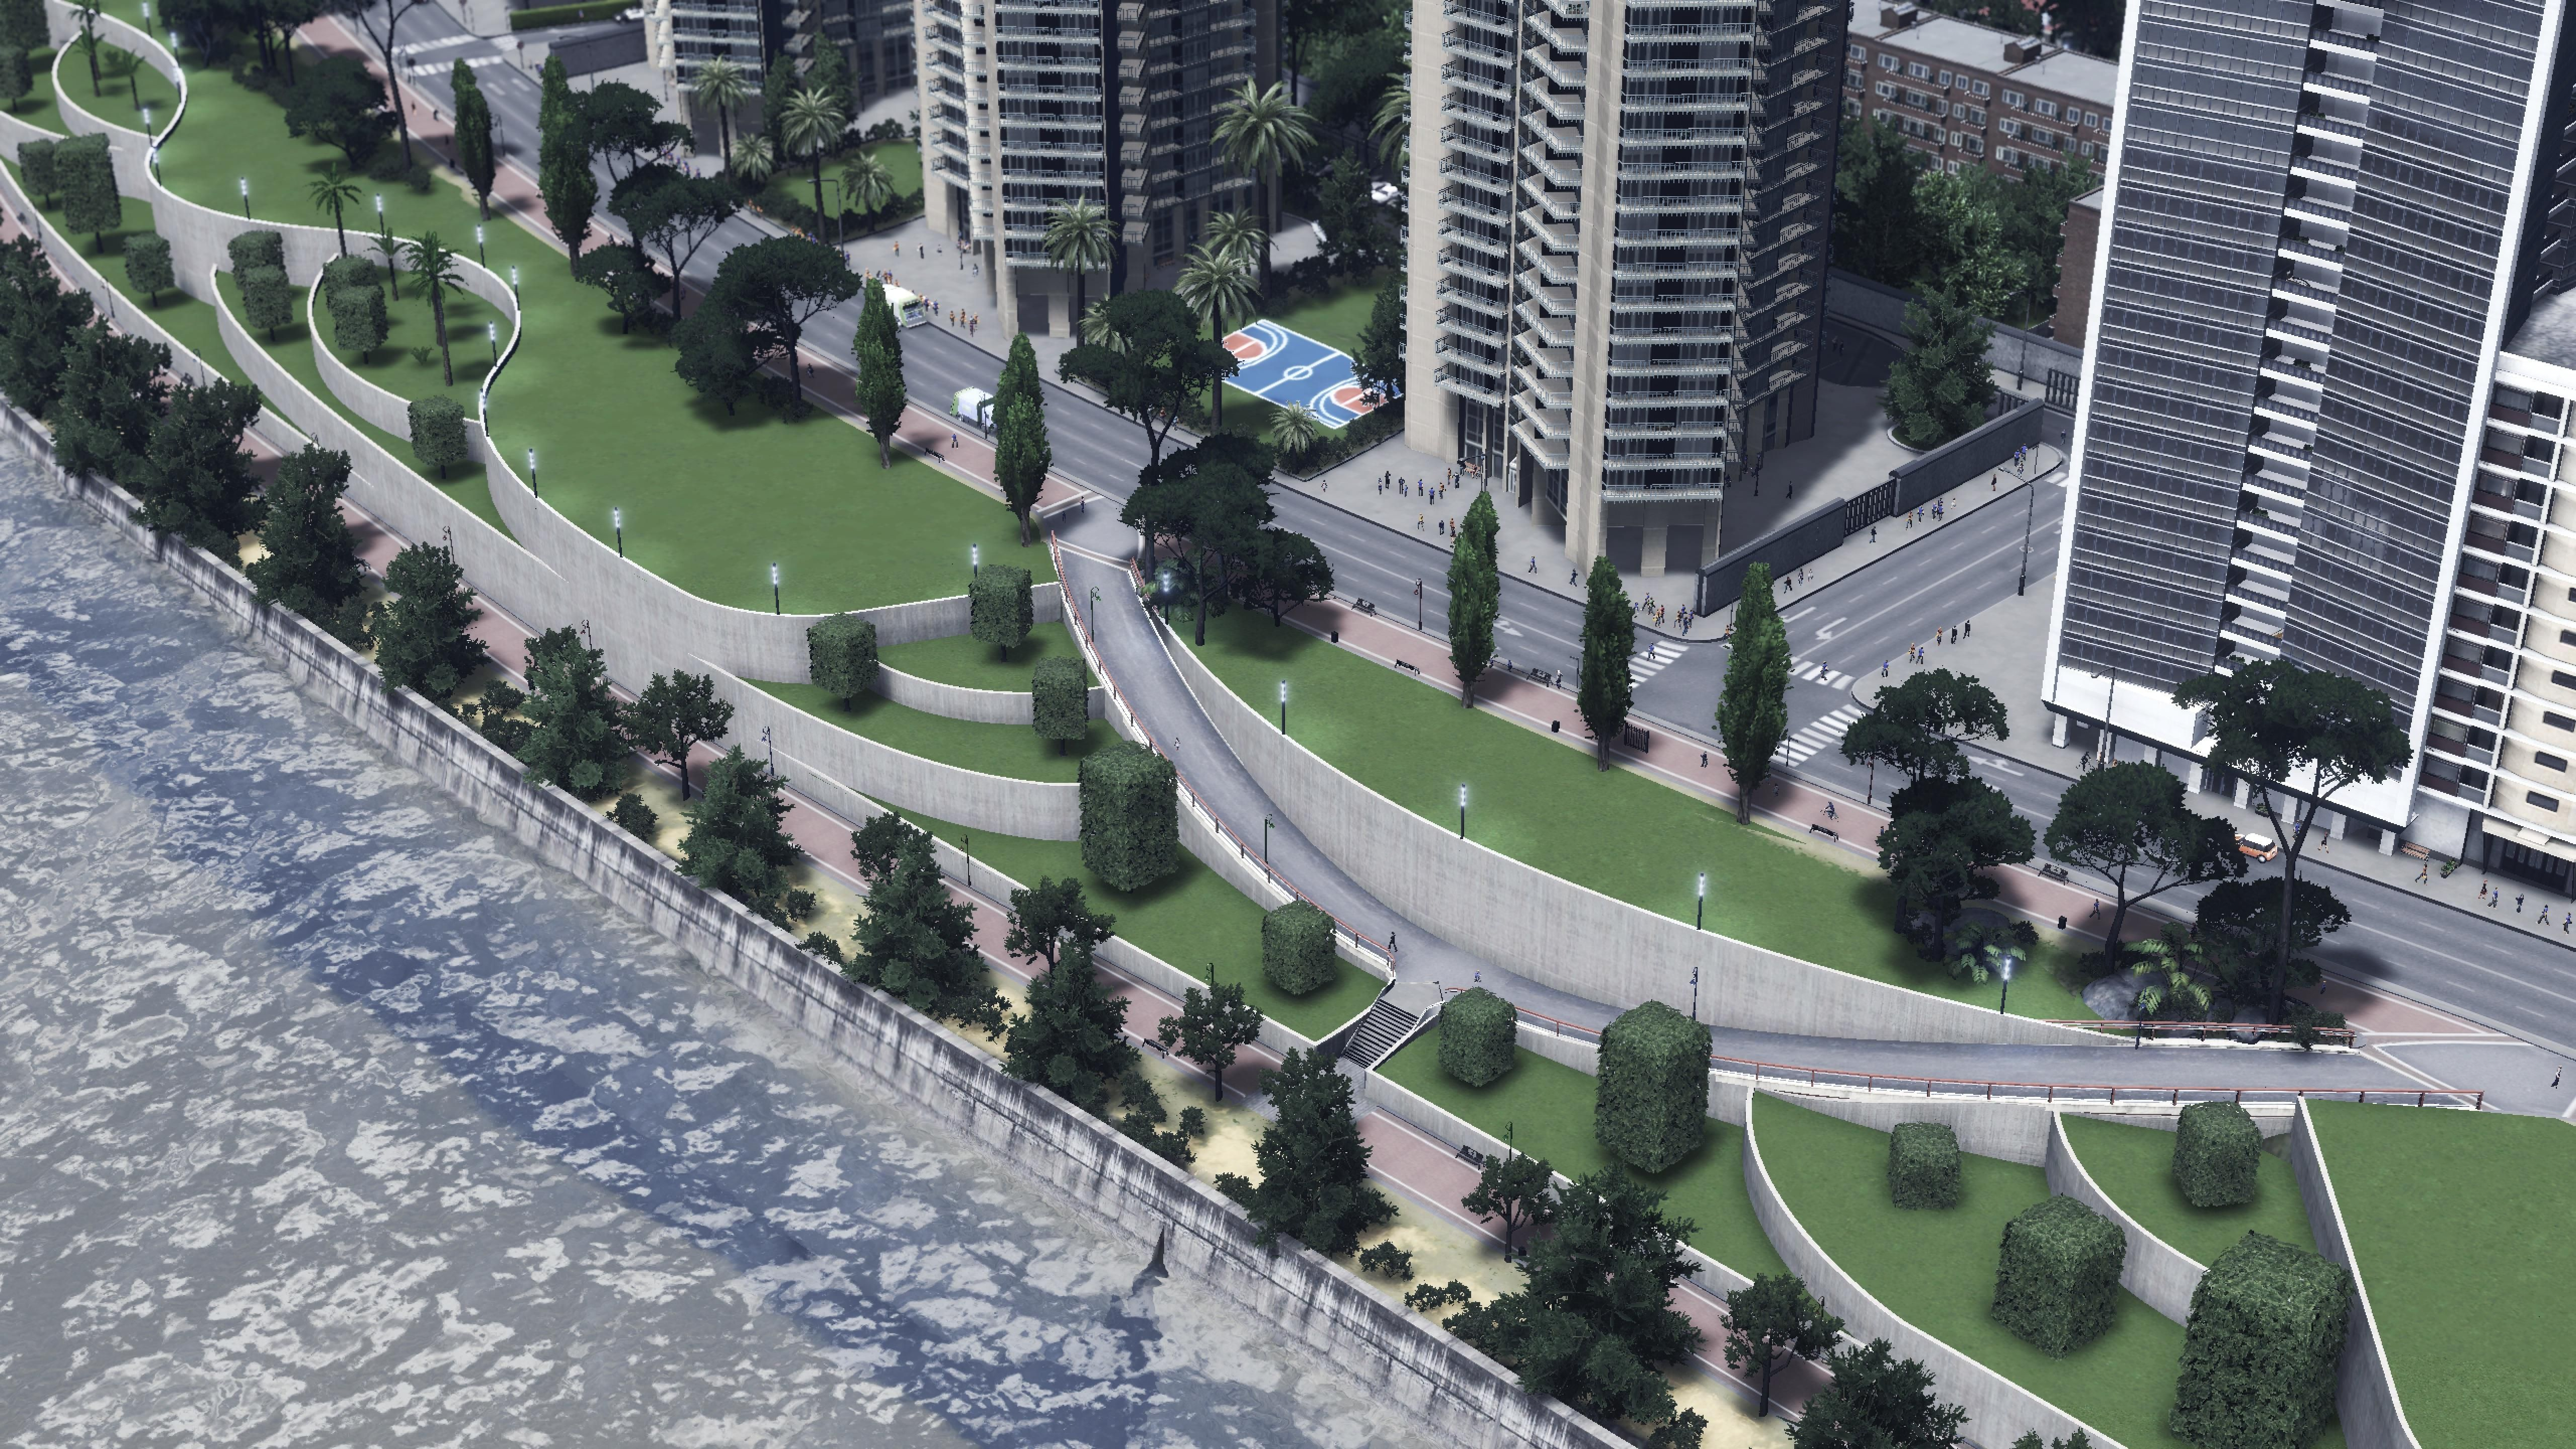 Cities Skylines Inspiration From R Citiesskylines City Skylines Game City Design We Built This City